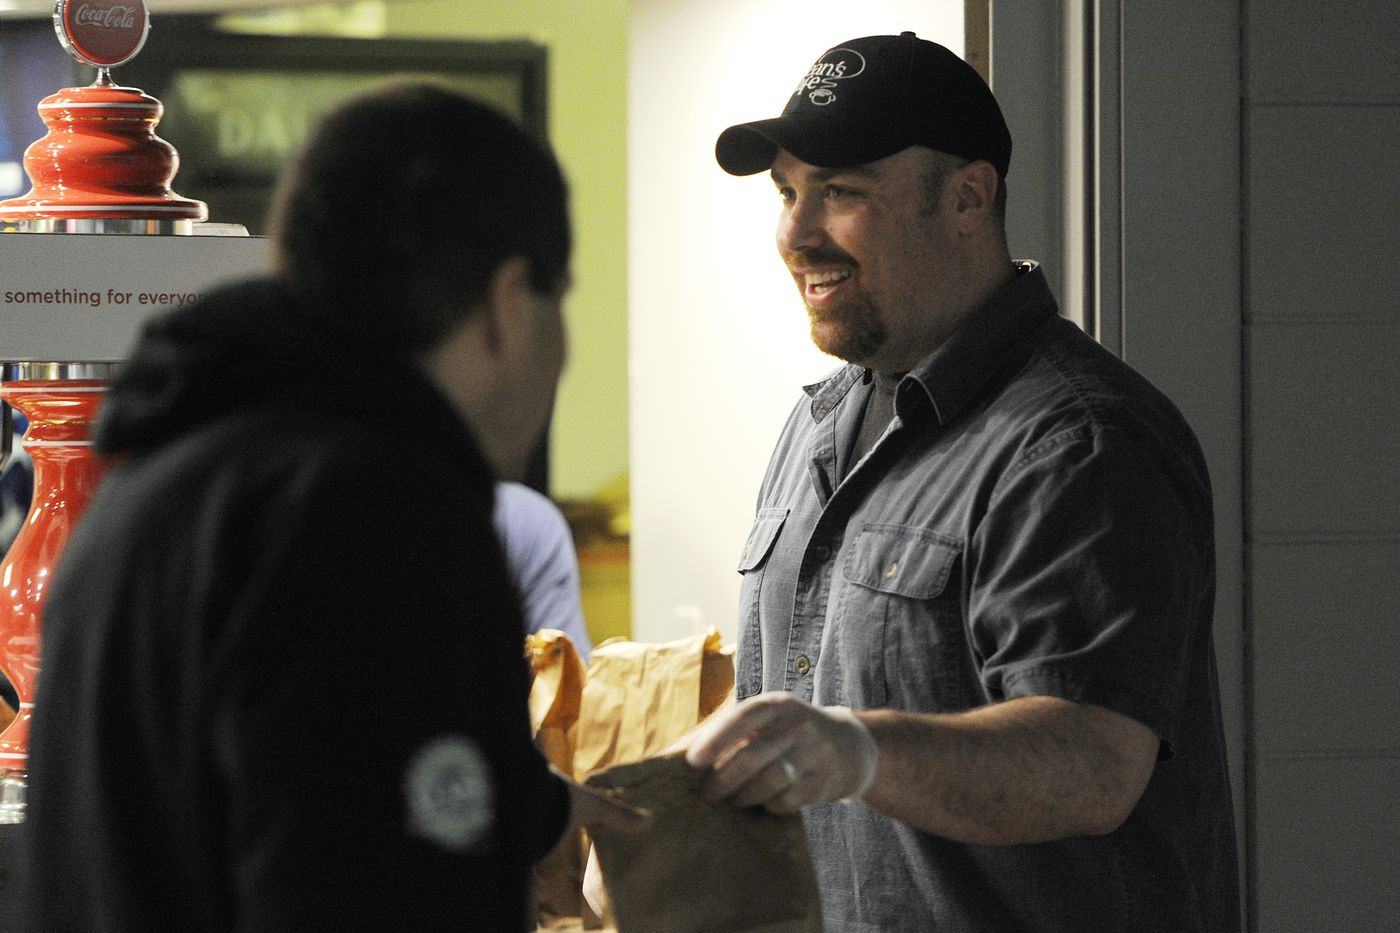 Bean's Cafe food services supervisor Aaron Lochridge distributed sack lunches to clients at the emergency shelter inside the Sullivan Arena during the COVID-19 pandemic on Wednesday, April 29, 2020. (Bill Roth / ADN)